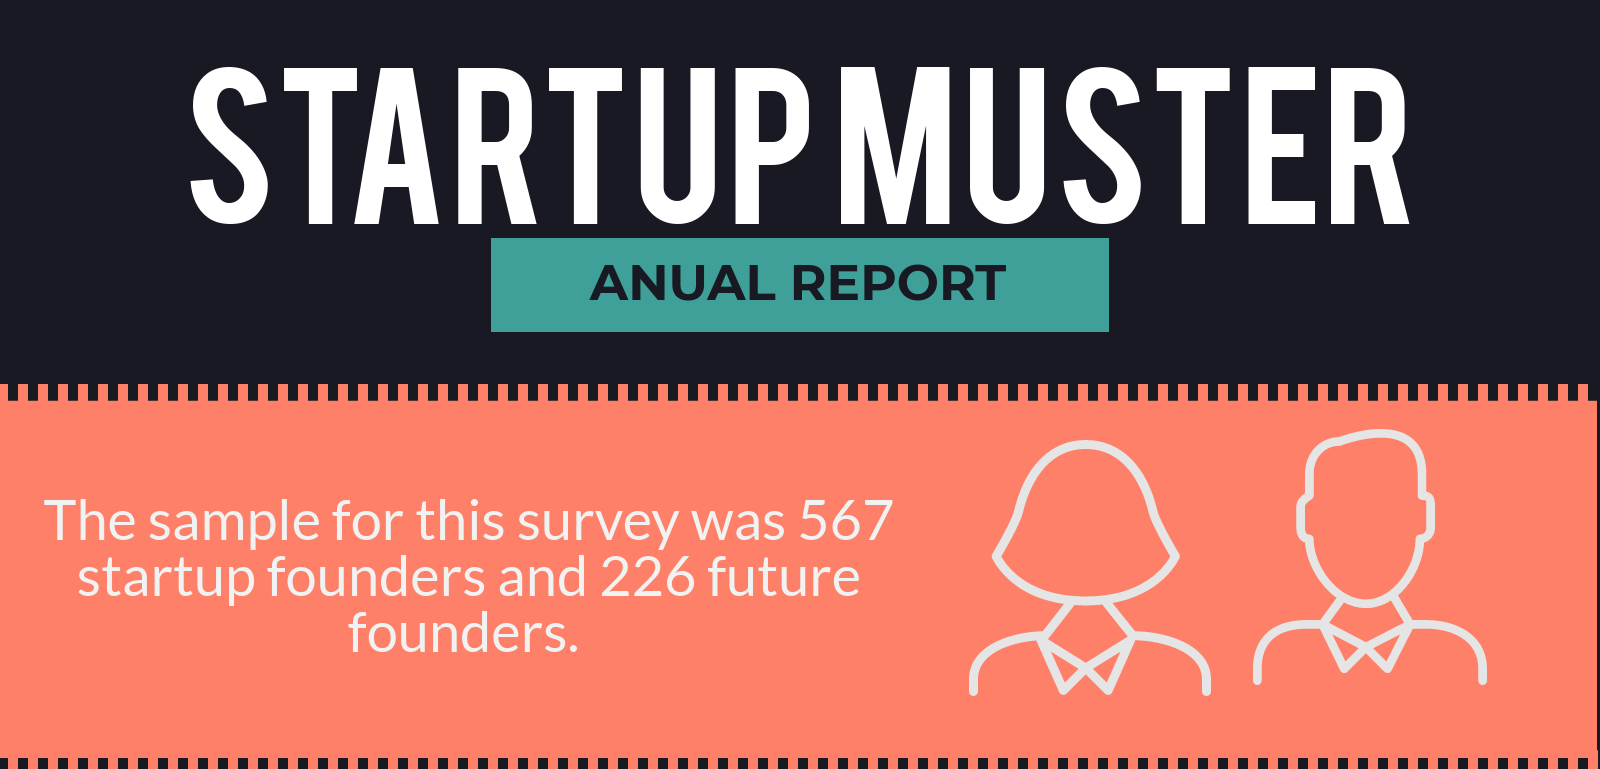 Startup Muster Anual Report Infographic